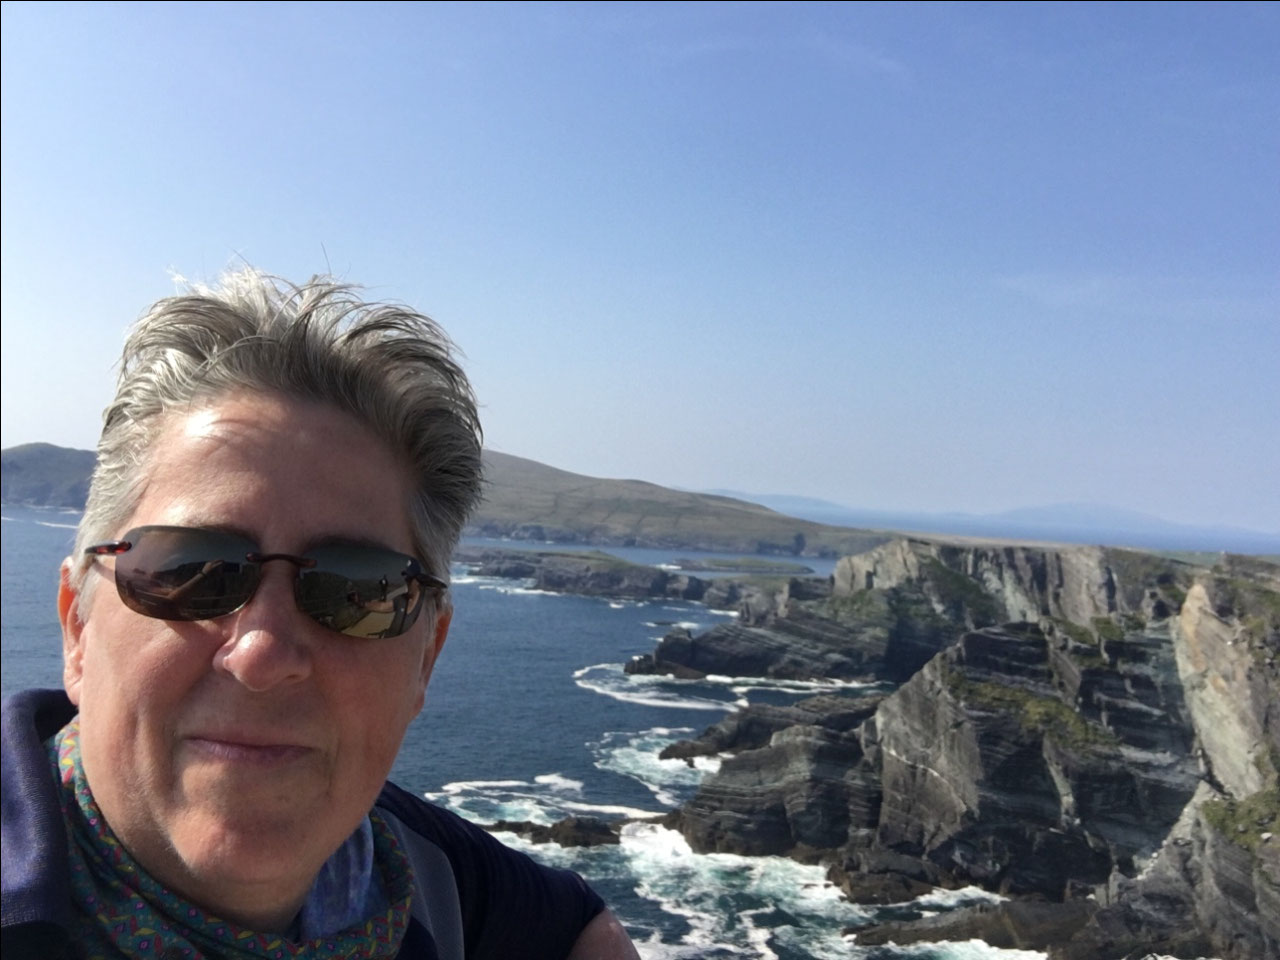 Moi at the Kerry Cliffs